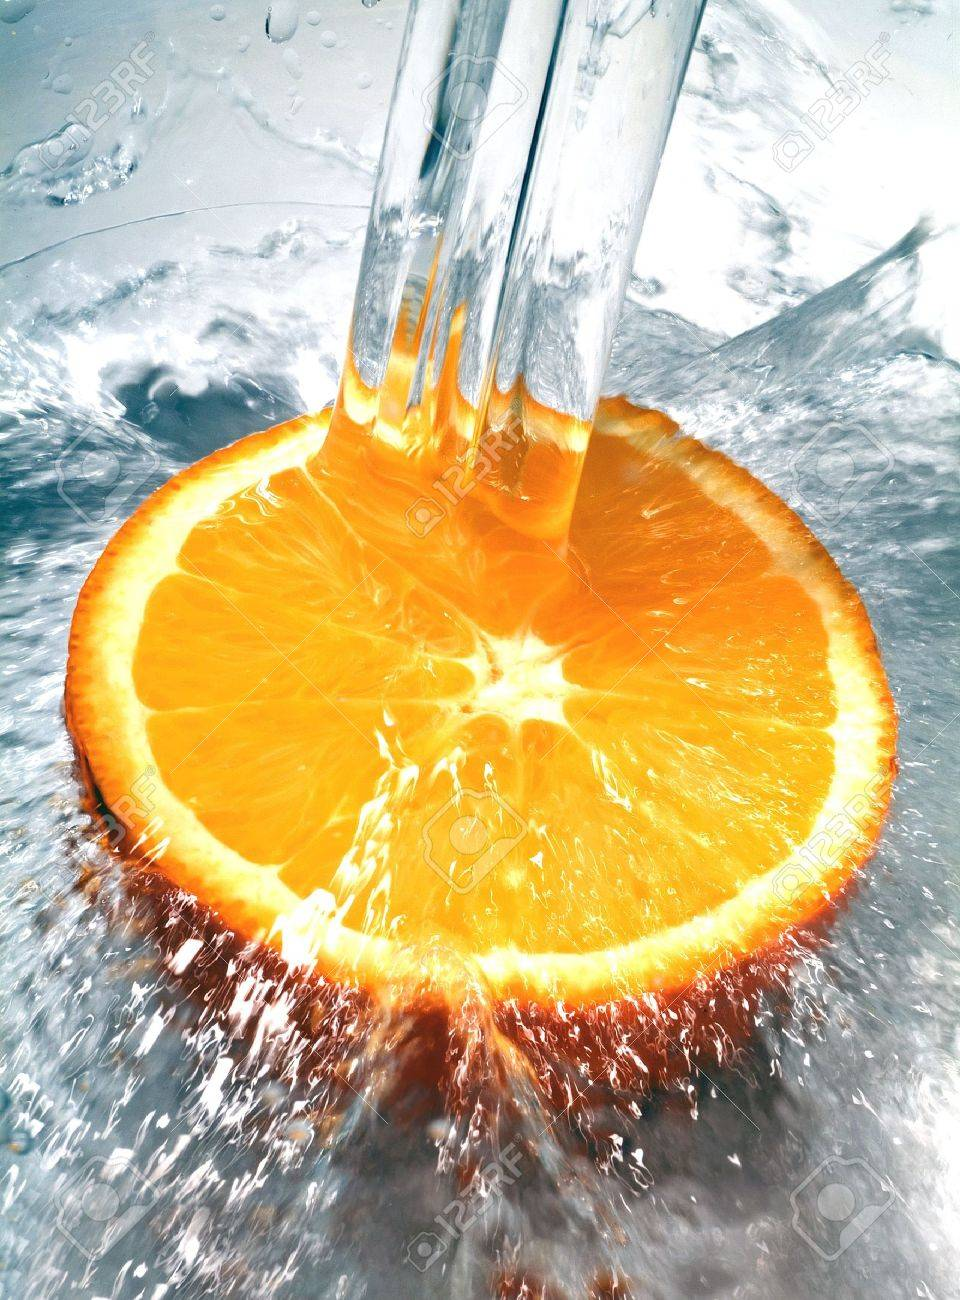 Fresh orange jumping into water with a splash Stock Photo - 767380